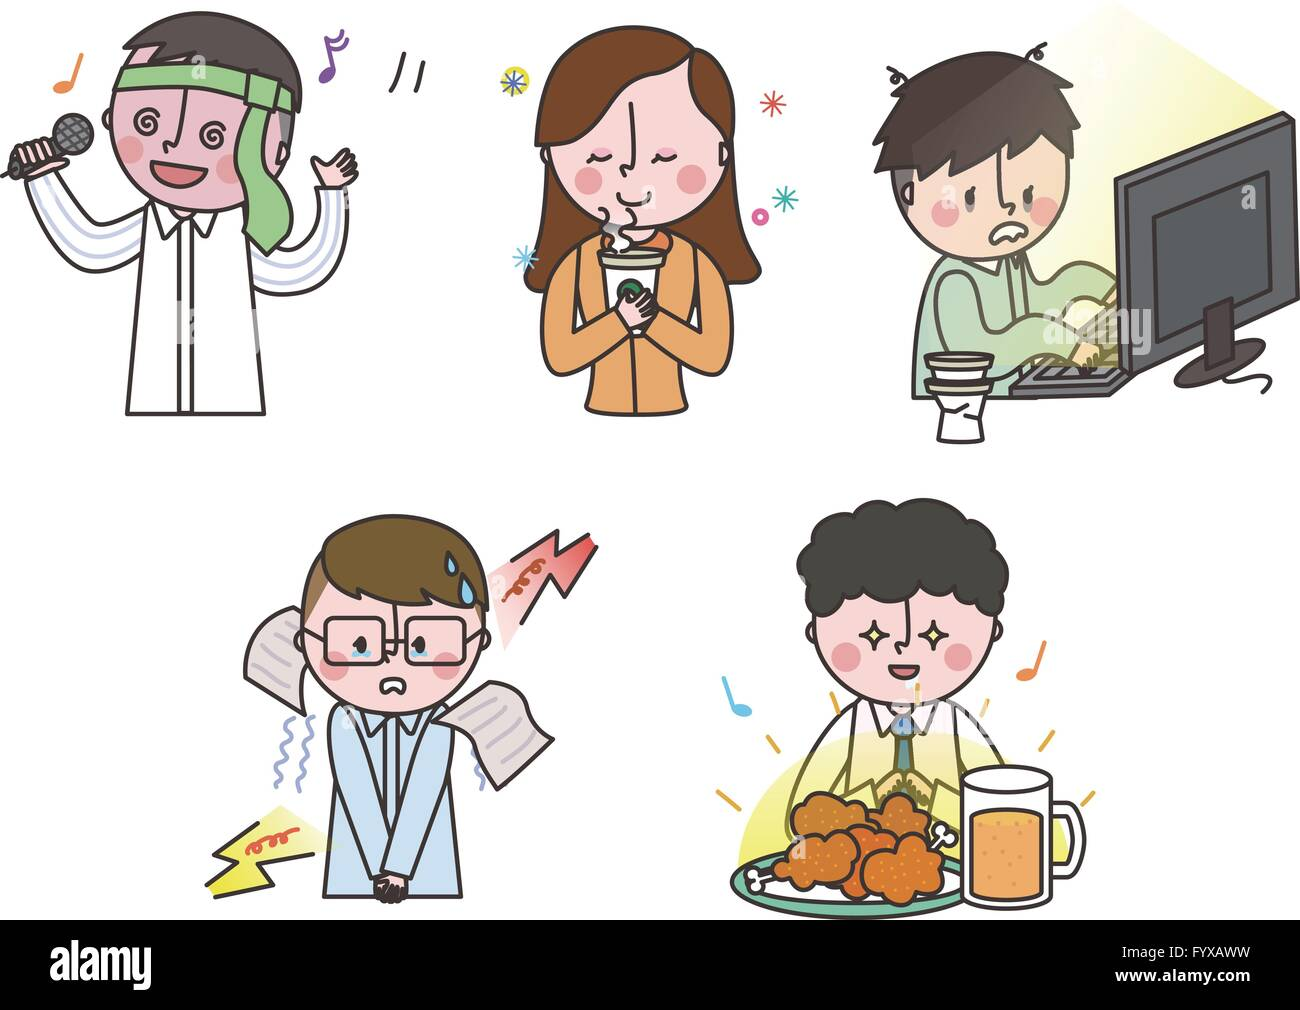 Job emoticons 010 - Stock Image